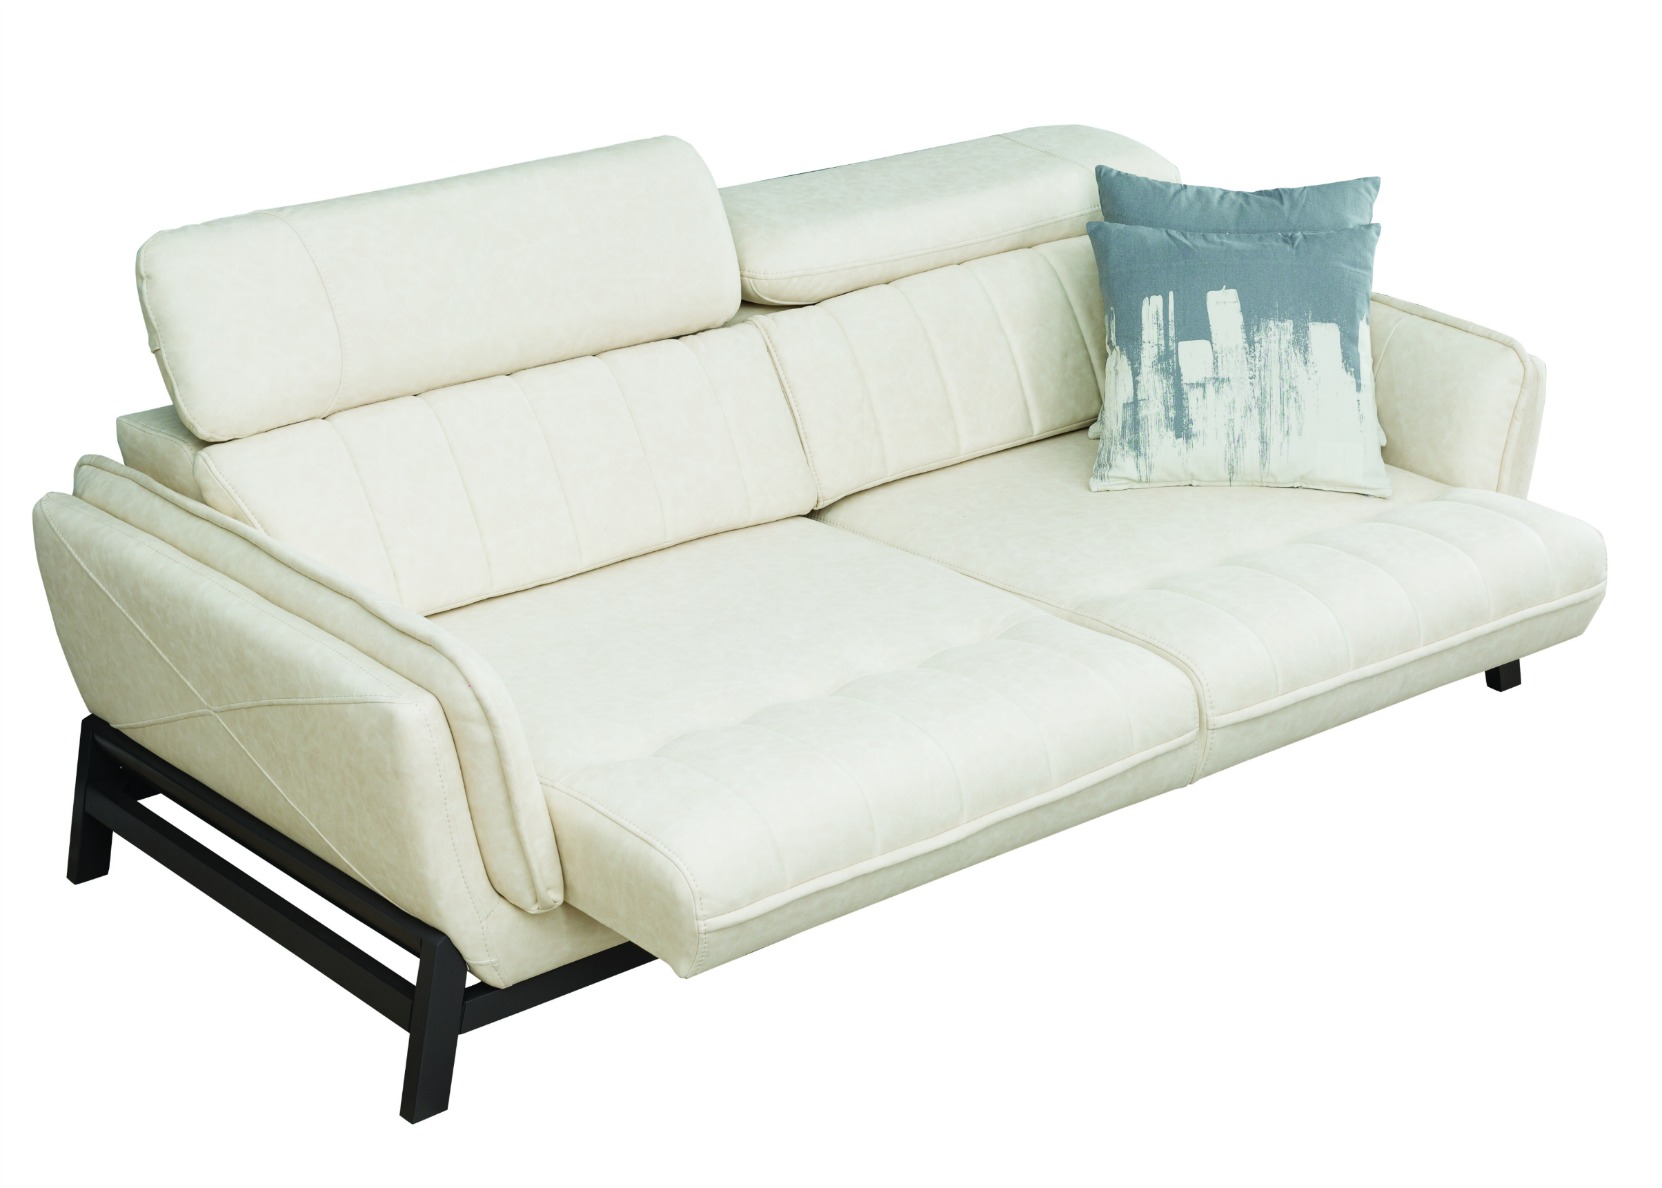 Relax Sofa Relax Sofa Great Relax Sofa Pilow Gray With Relax Sofa Trendy